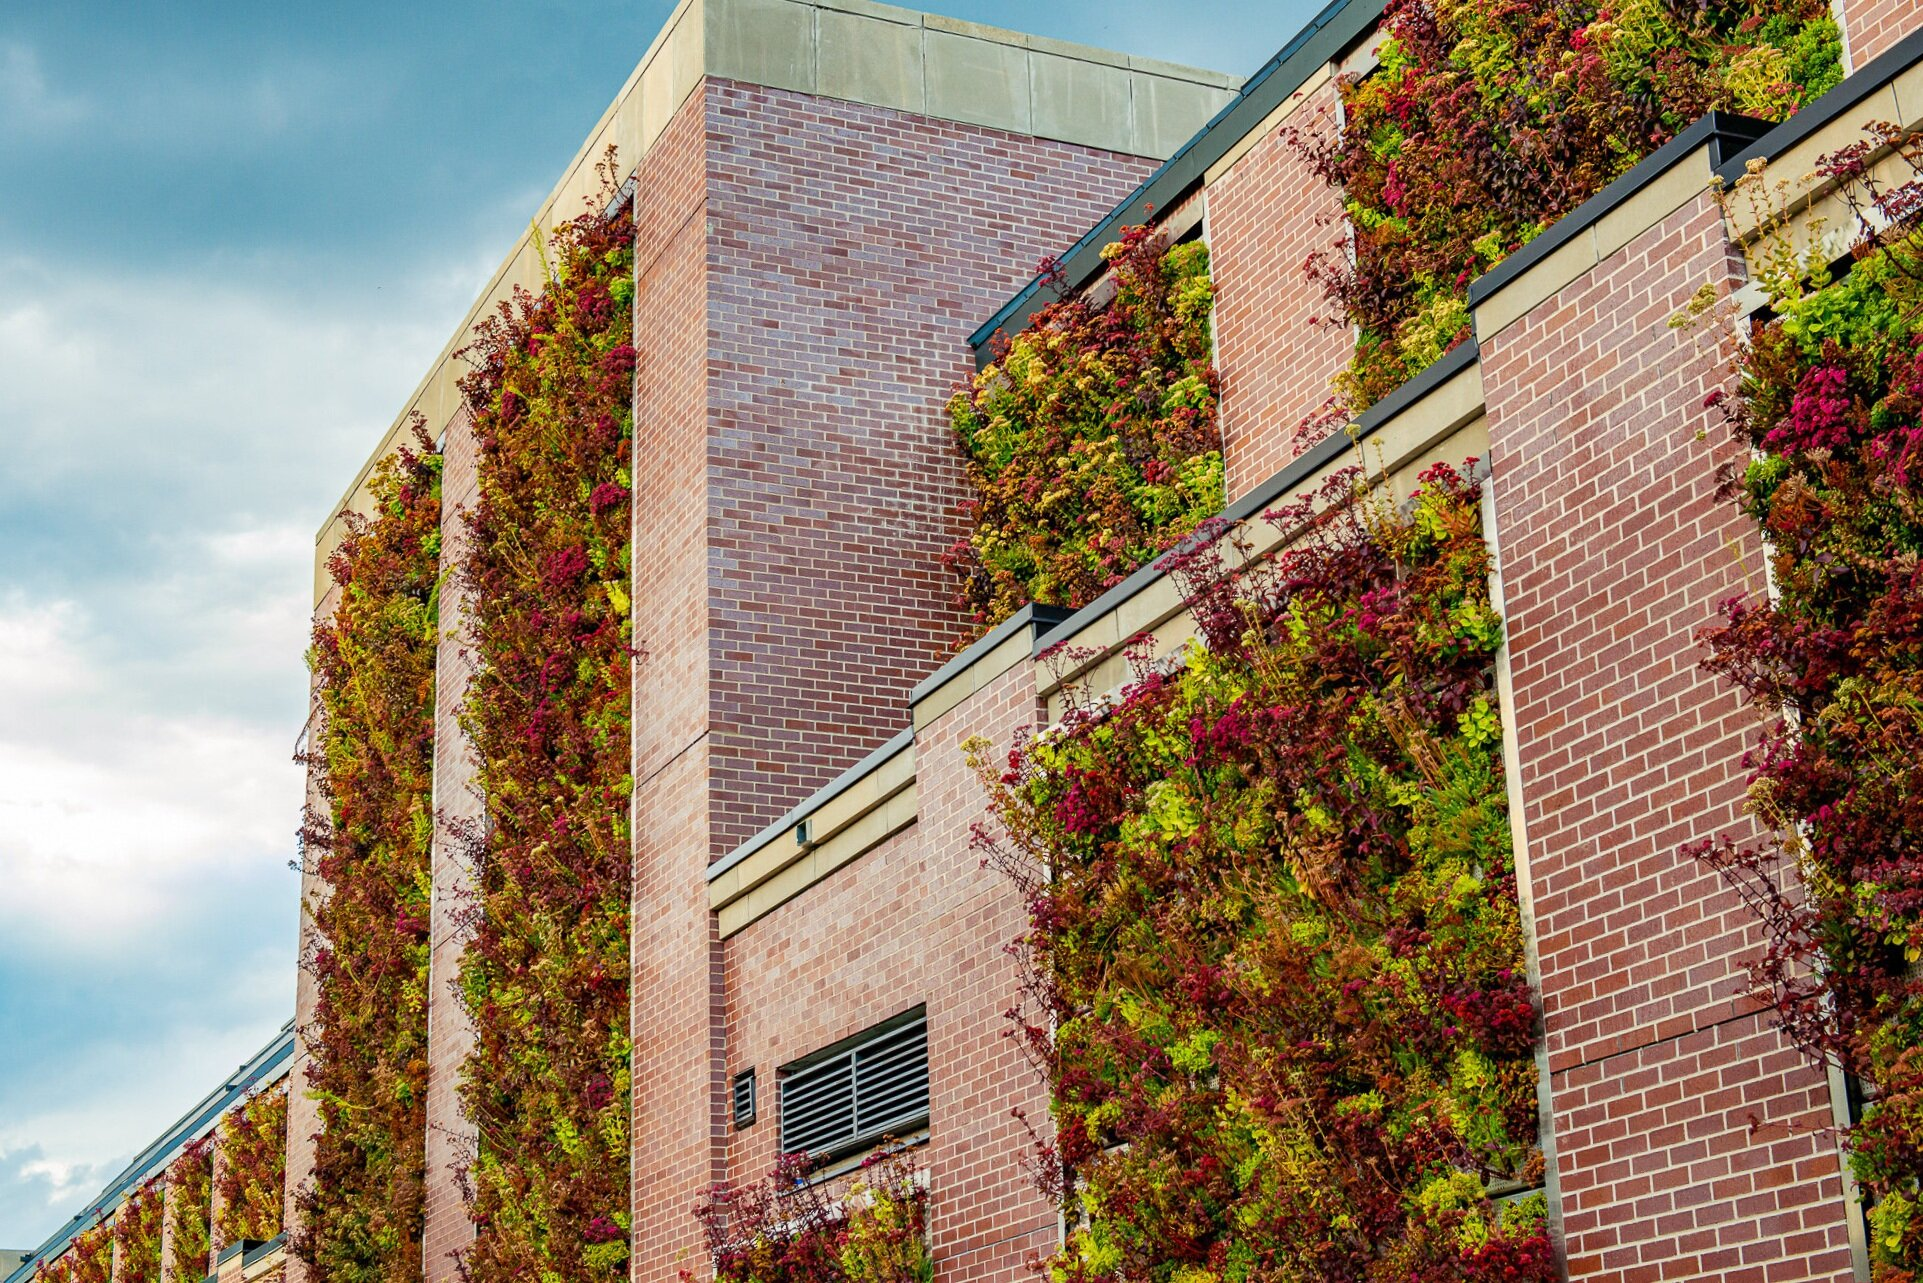 Exterior Walls - Living Walls are a great way to add natural insulation to your building, while also decreasing your carbon footprint and increasing pedestrian traffic to retail spaces.